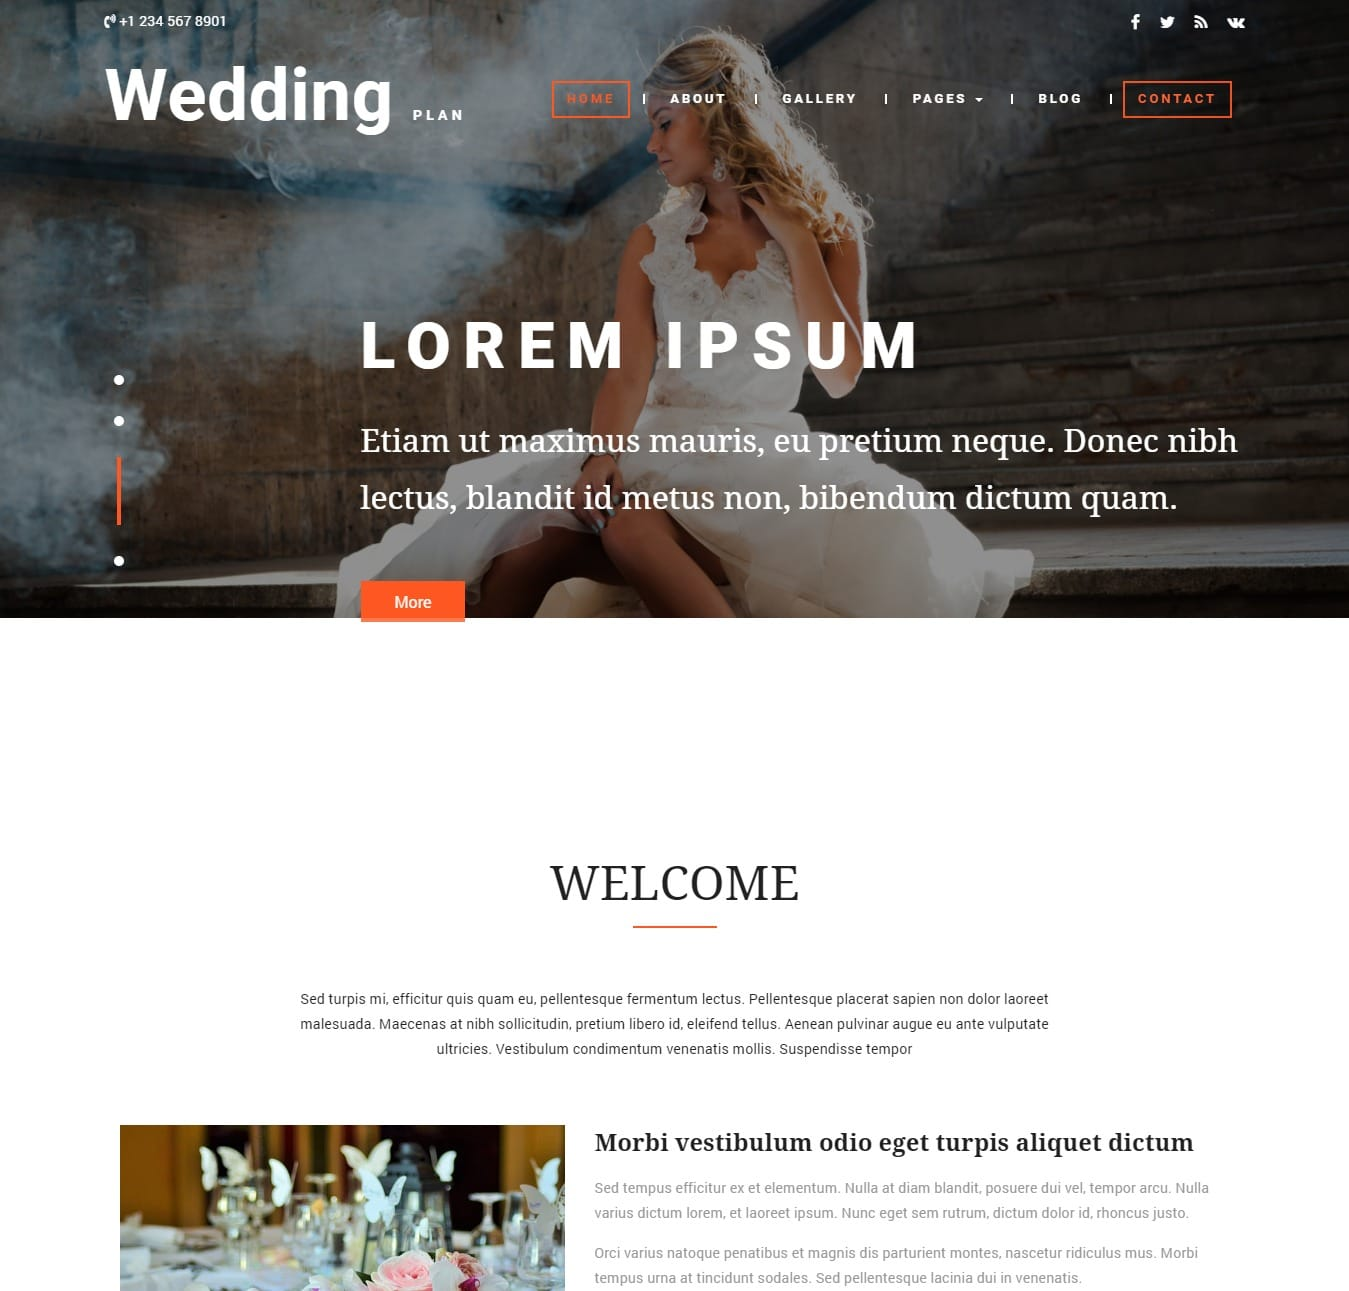 wedding-plan-free-wedding-website-template